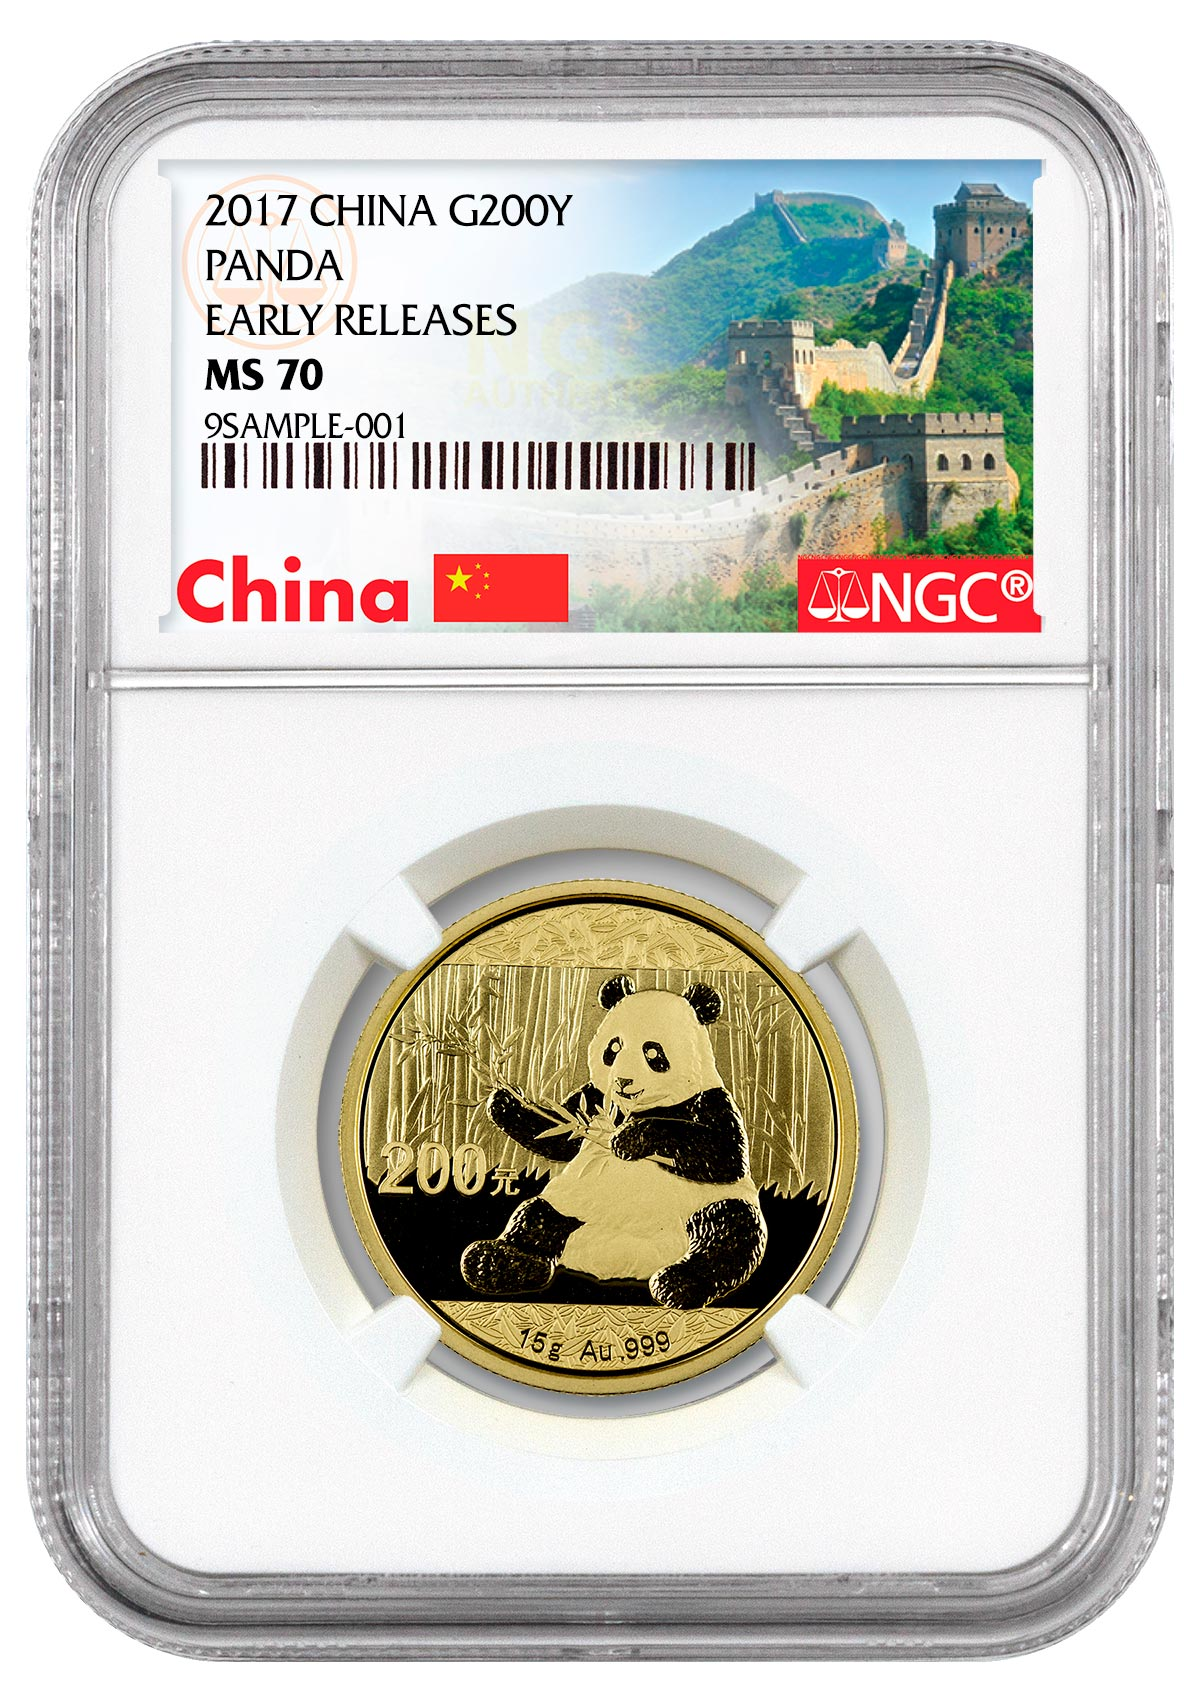 2017 China 15 g Gold Panda ¥200 Coin NGC MS70 ER (Exclusive Great Wall Label)